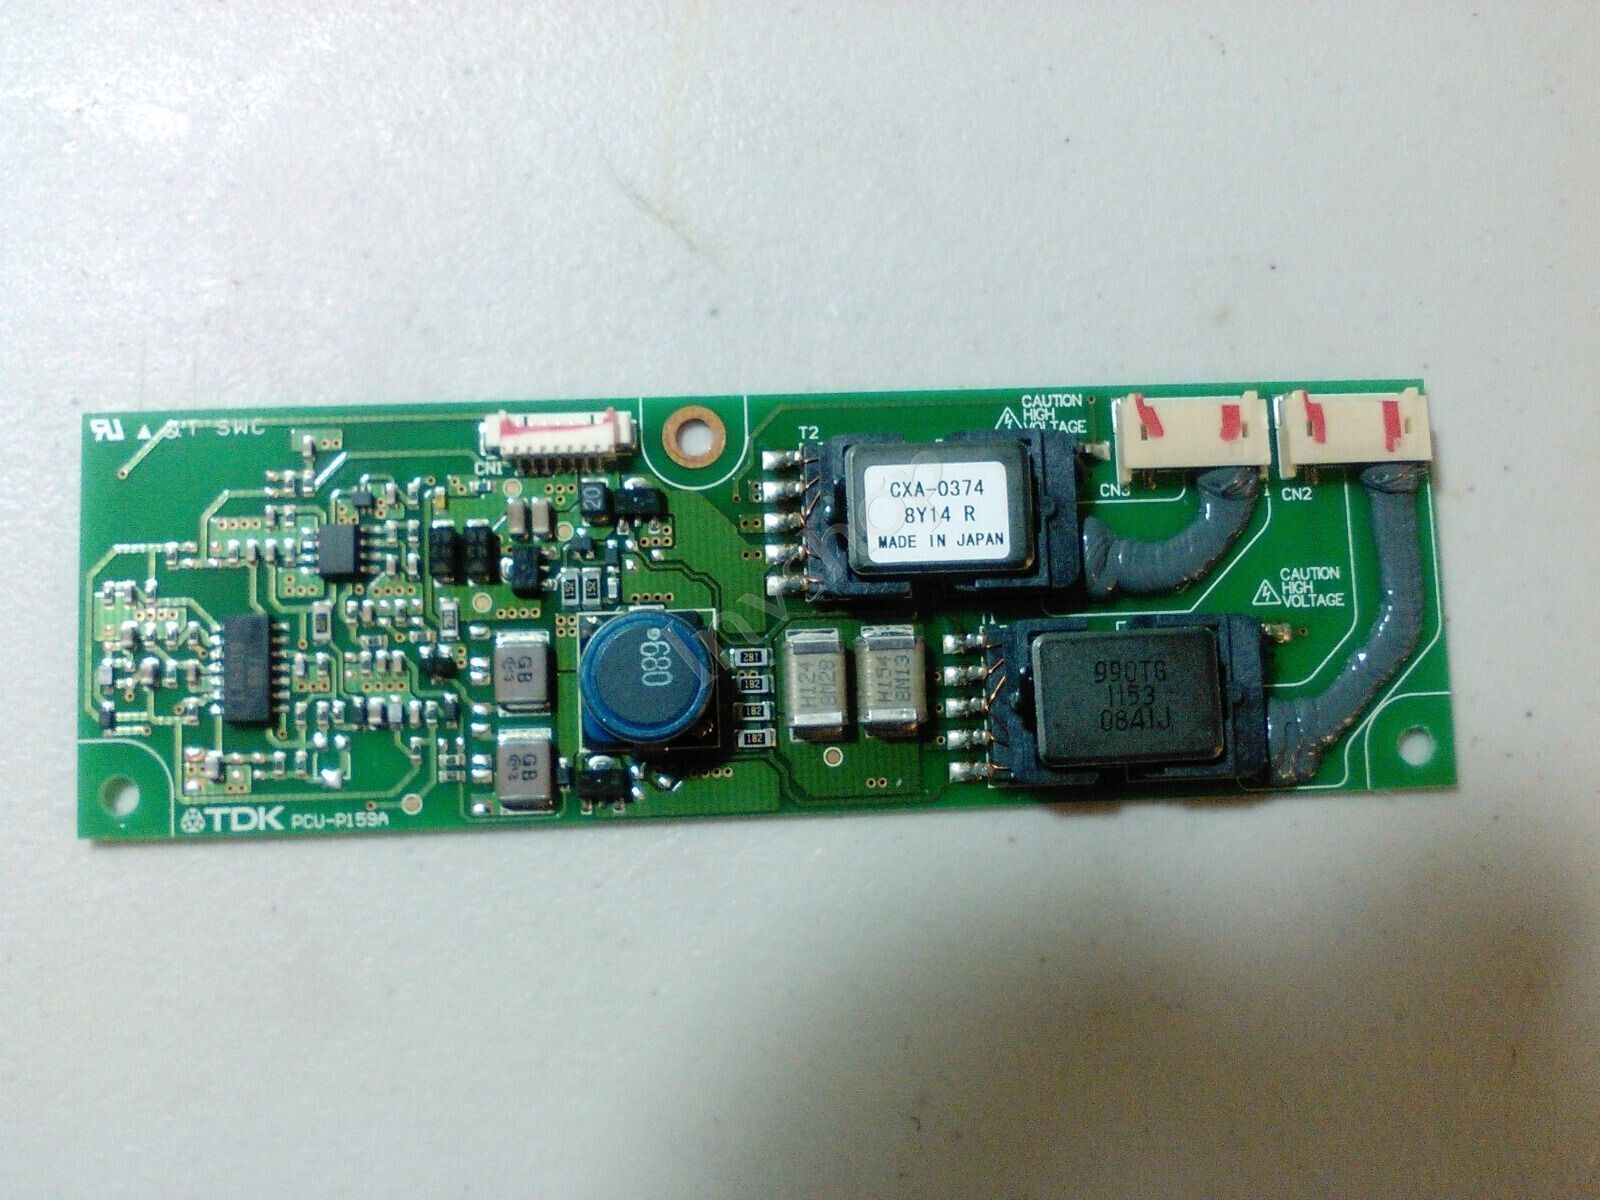 TDK PCU-P159A LCD High pressure article